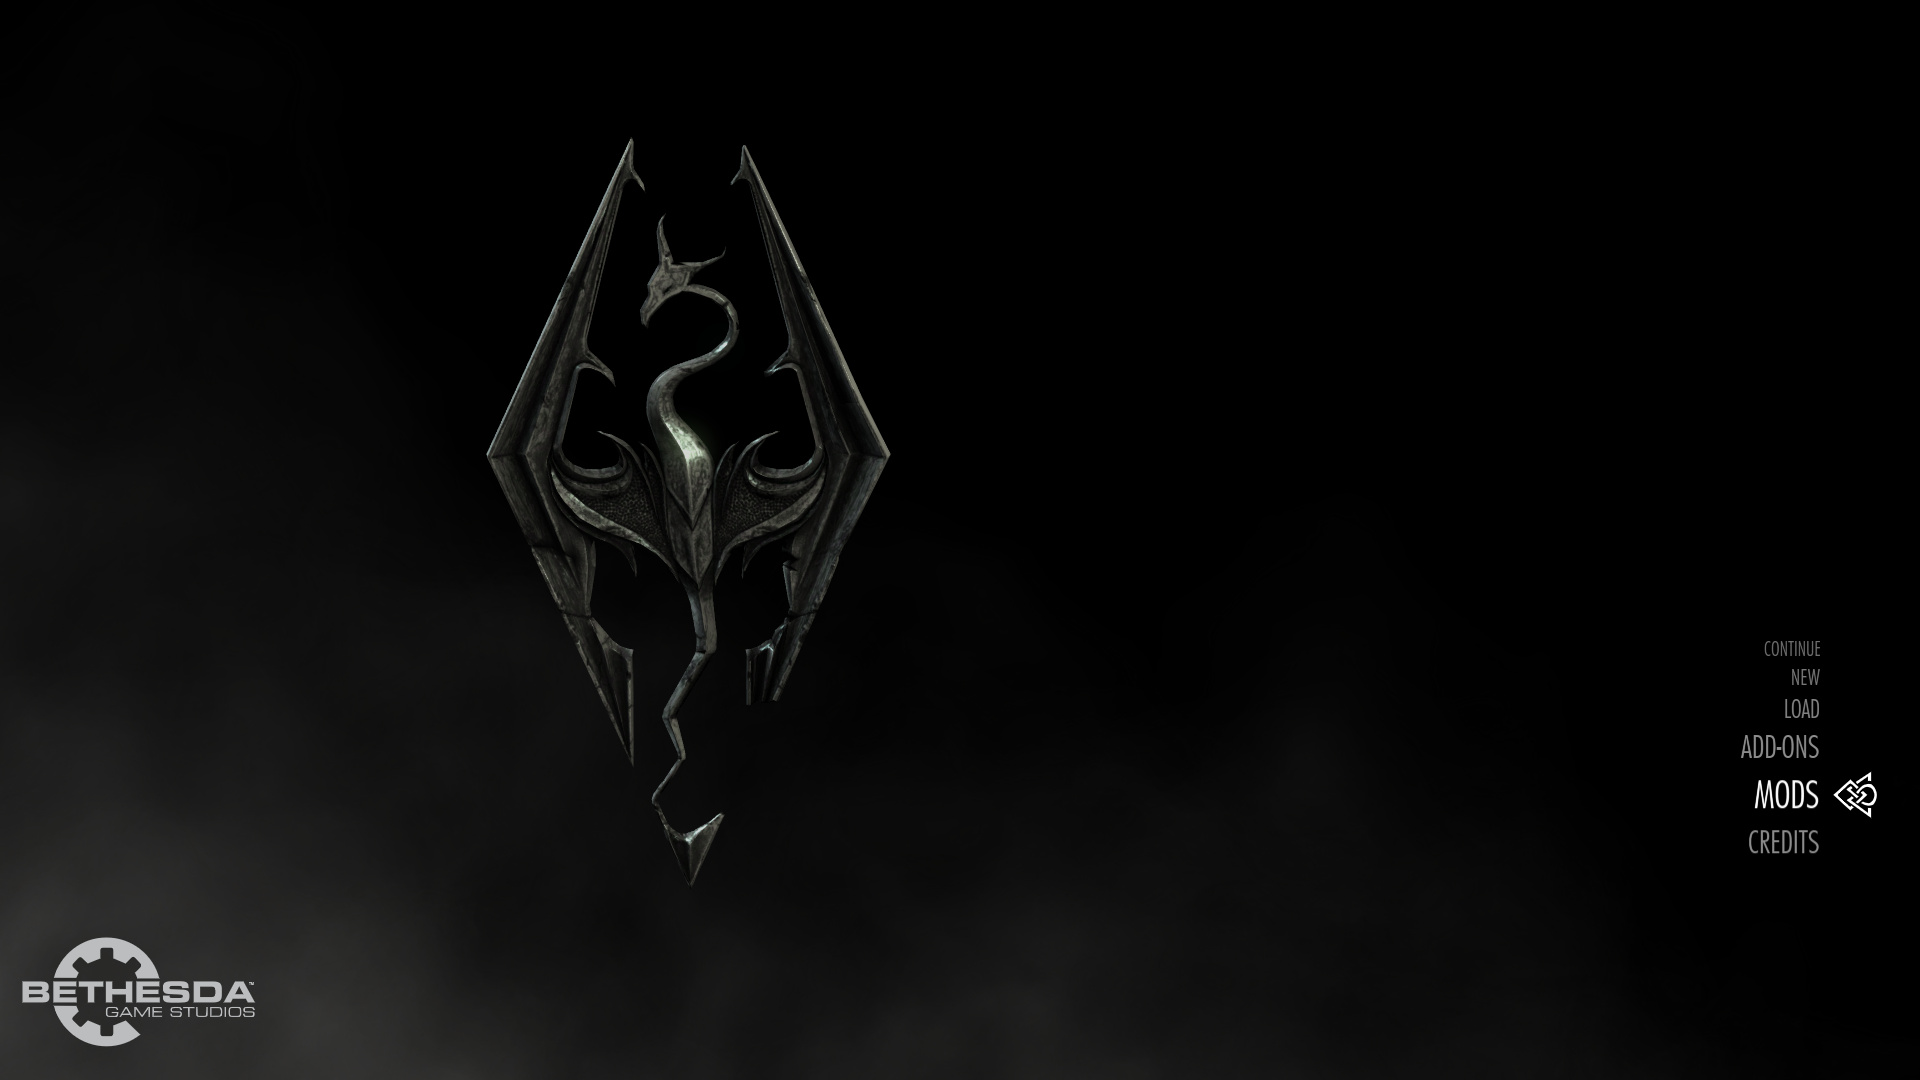 How to Download and Install Mods for Skyrim on PS4 - Guide - Push Square